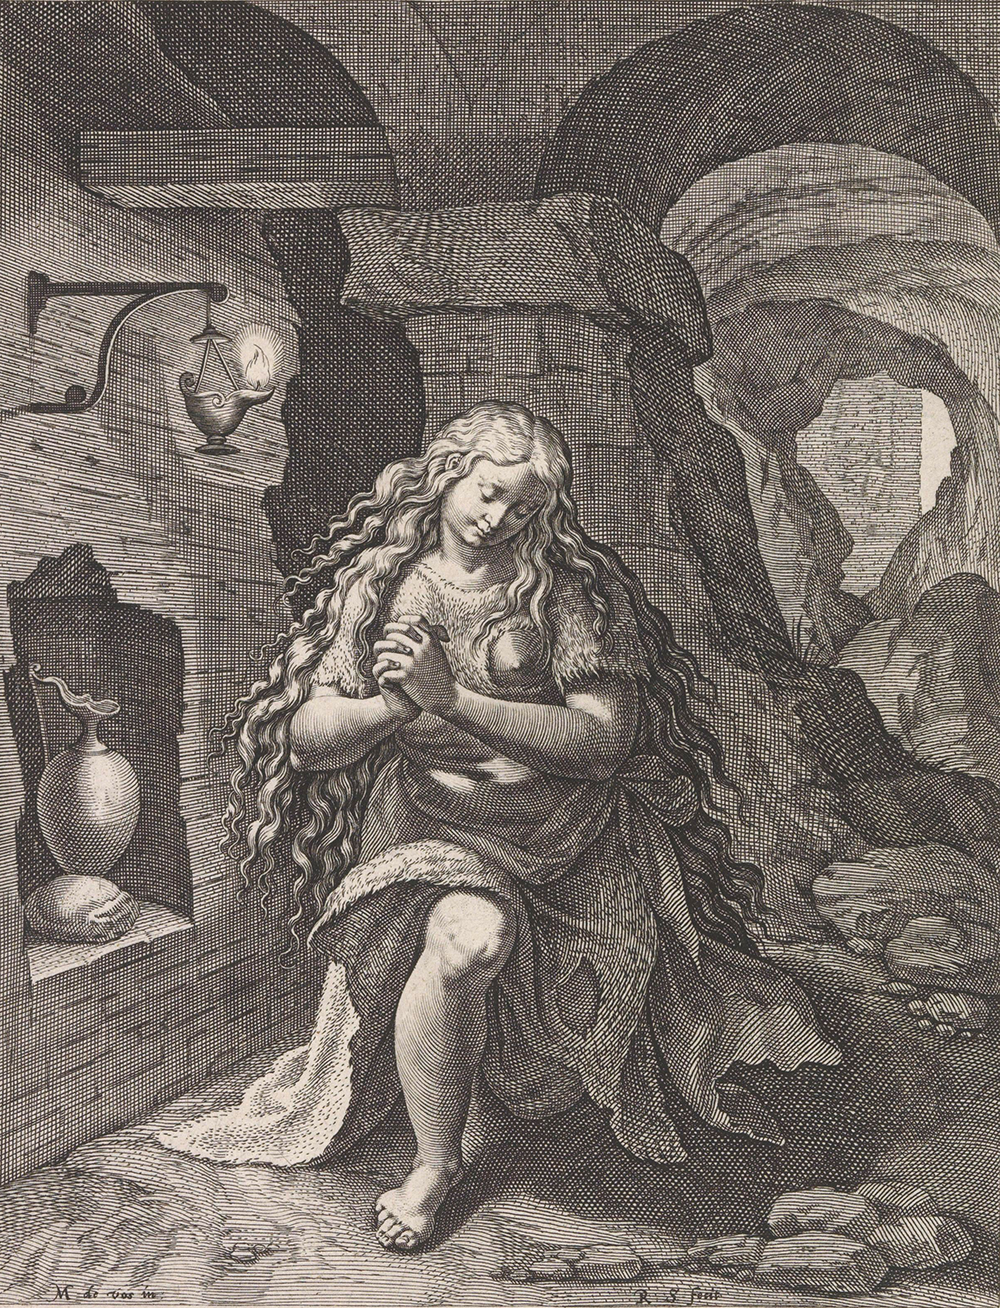 Mary Magdalene as the female personification of fasting, by Raphaël Sadeler, after Maerten de Vos, c. 1589. Rijksmuseum.